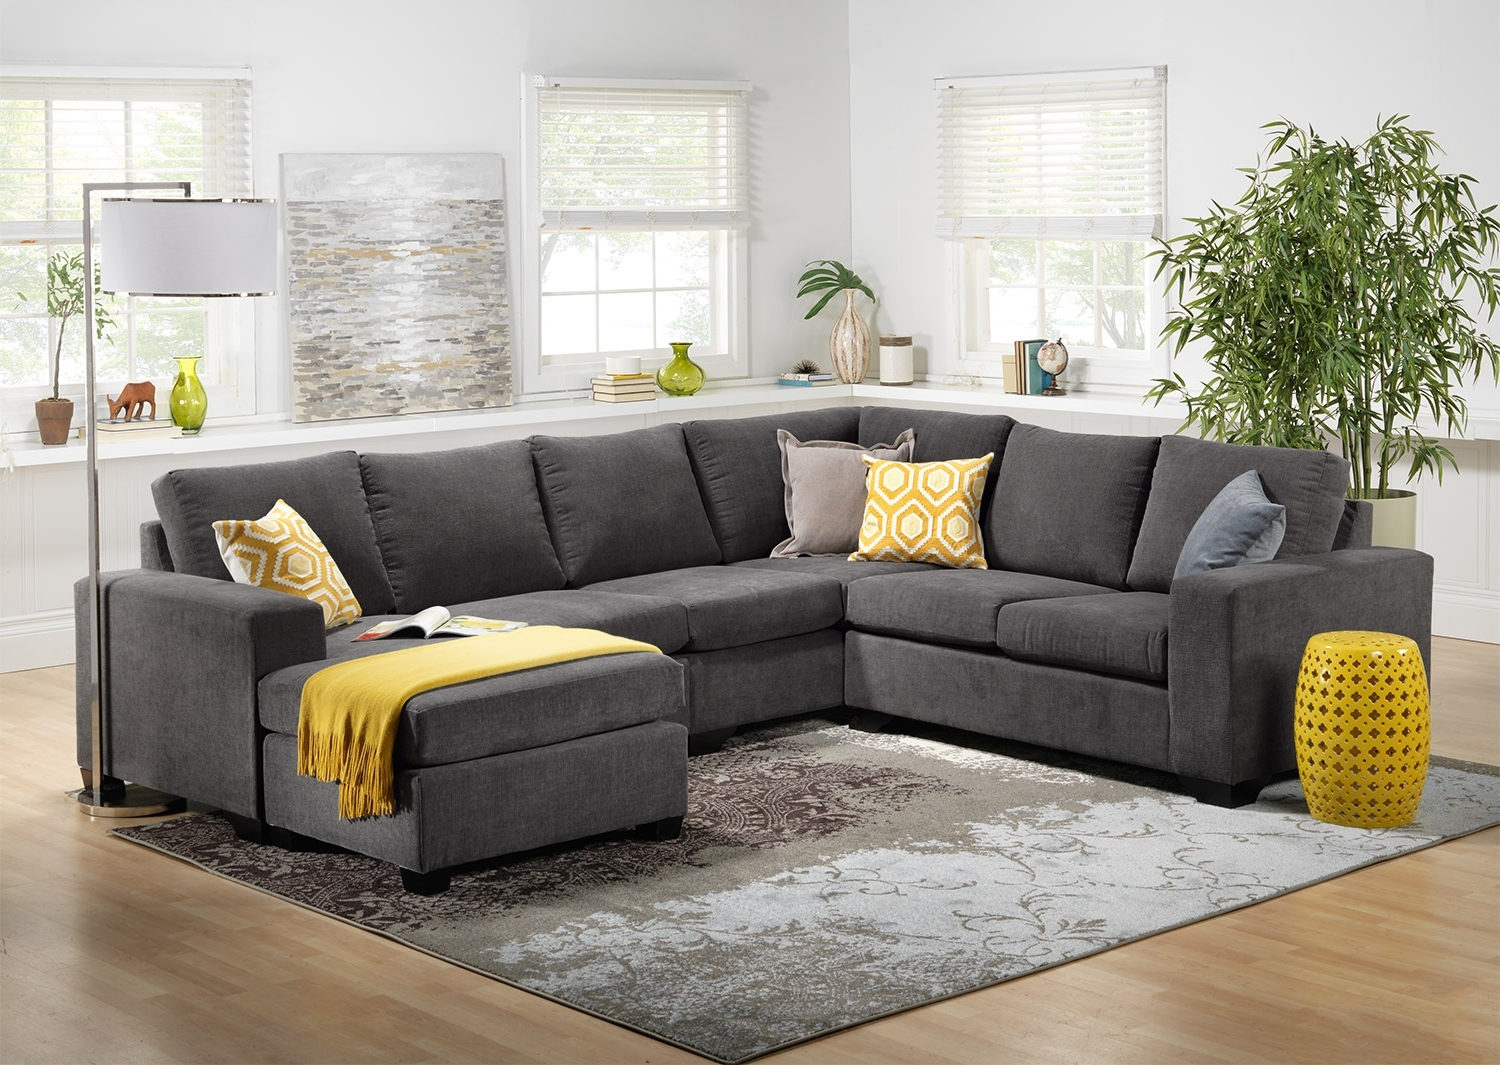 Danielle 3 Piece Sectional With Right Facing Corner Wedge – Grey Throughout Newest Scarborough Sectional Sofas (View 3 of 15)